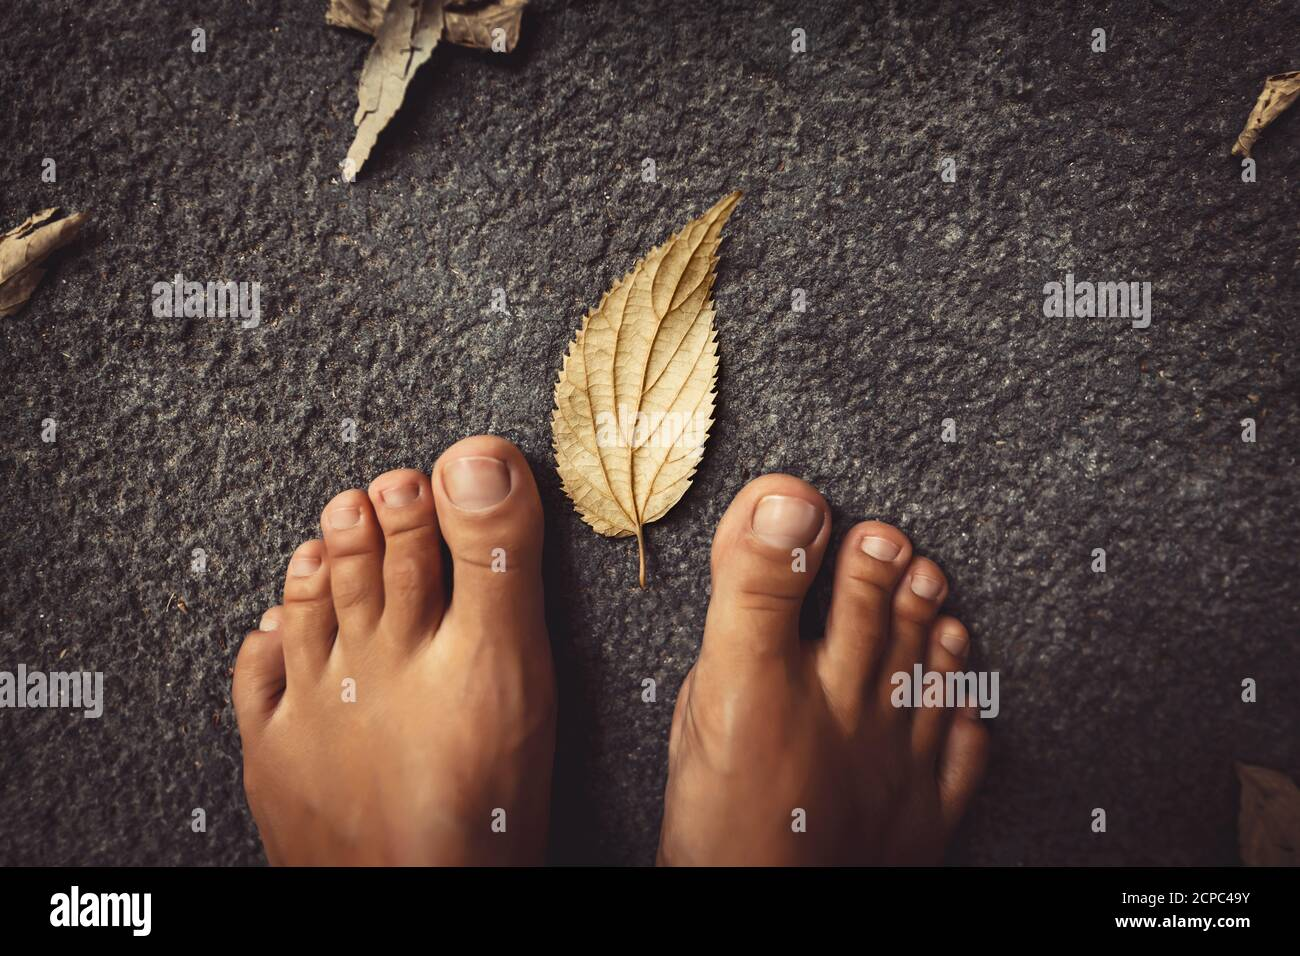 Welcome Fall Background. Closeup Concept Photo of a Barefoot Women Feet and Dry Leaves. Autumn Season Theme. Stock Photo